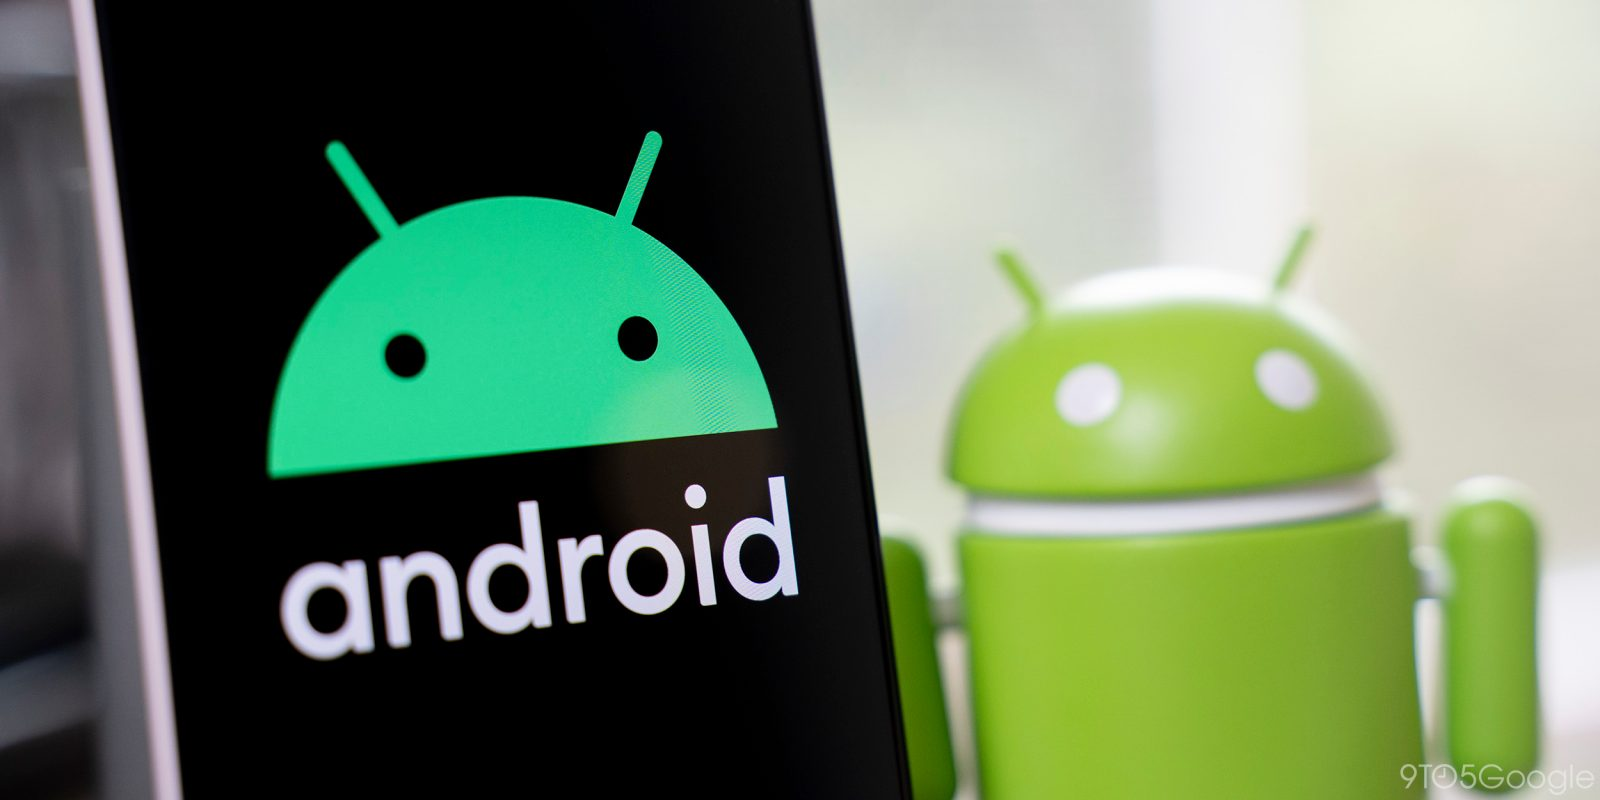 execute python program in android devices